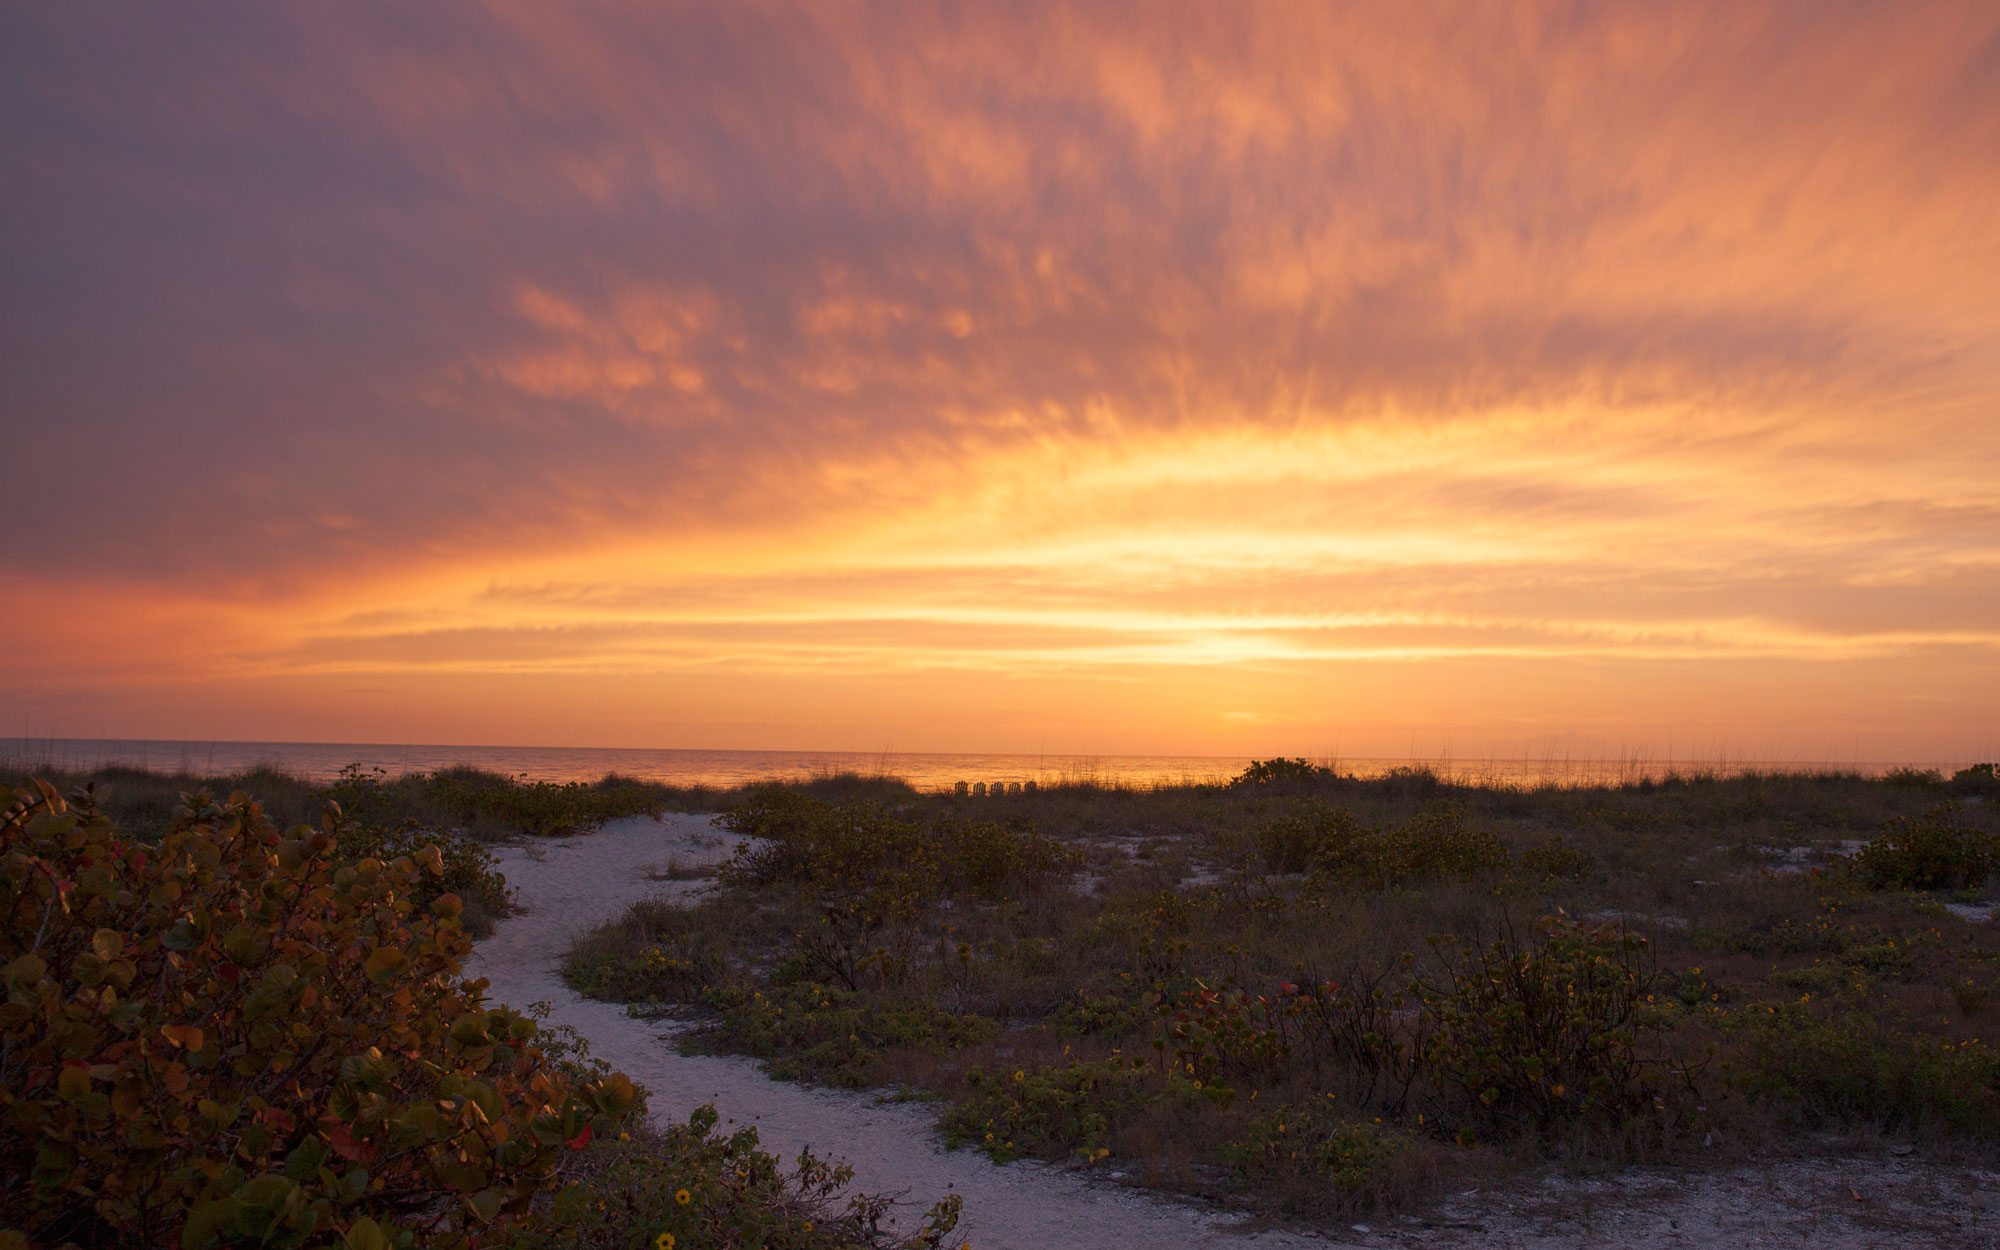 The World's Best Island Beaches:  No. 20 Captiva Island, FL